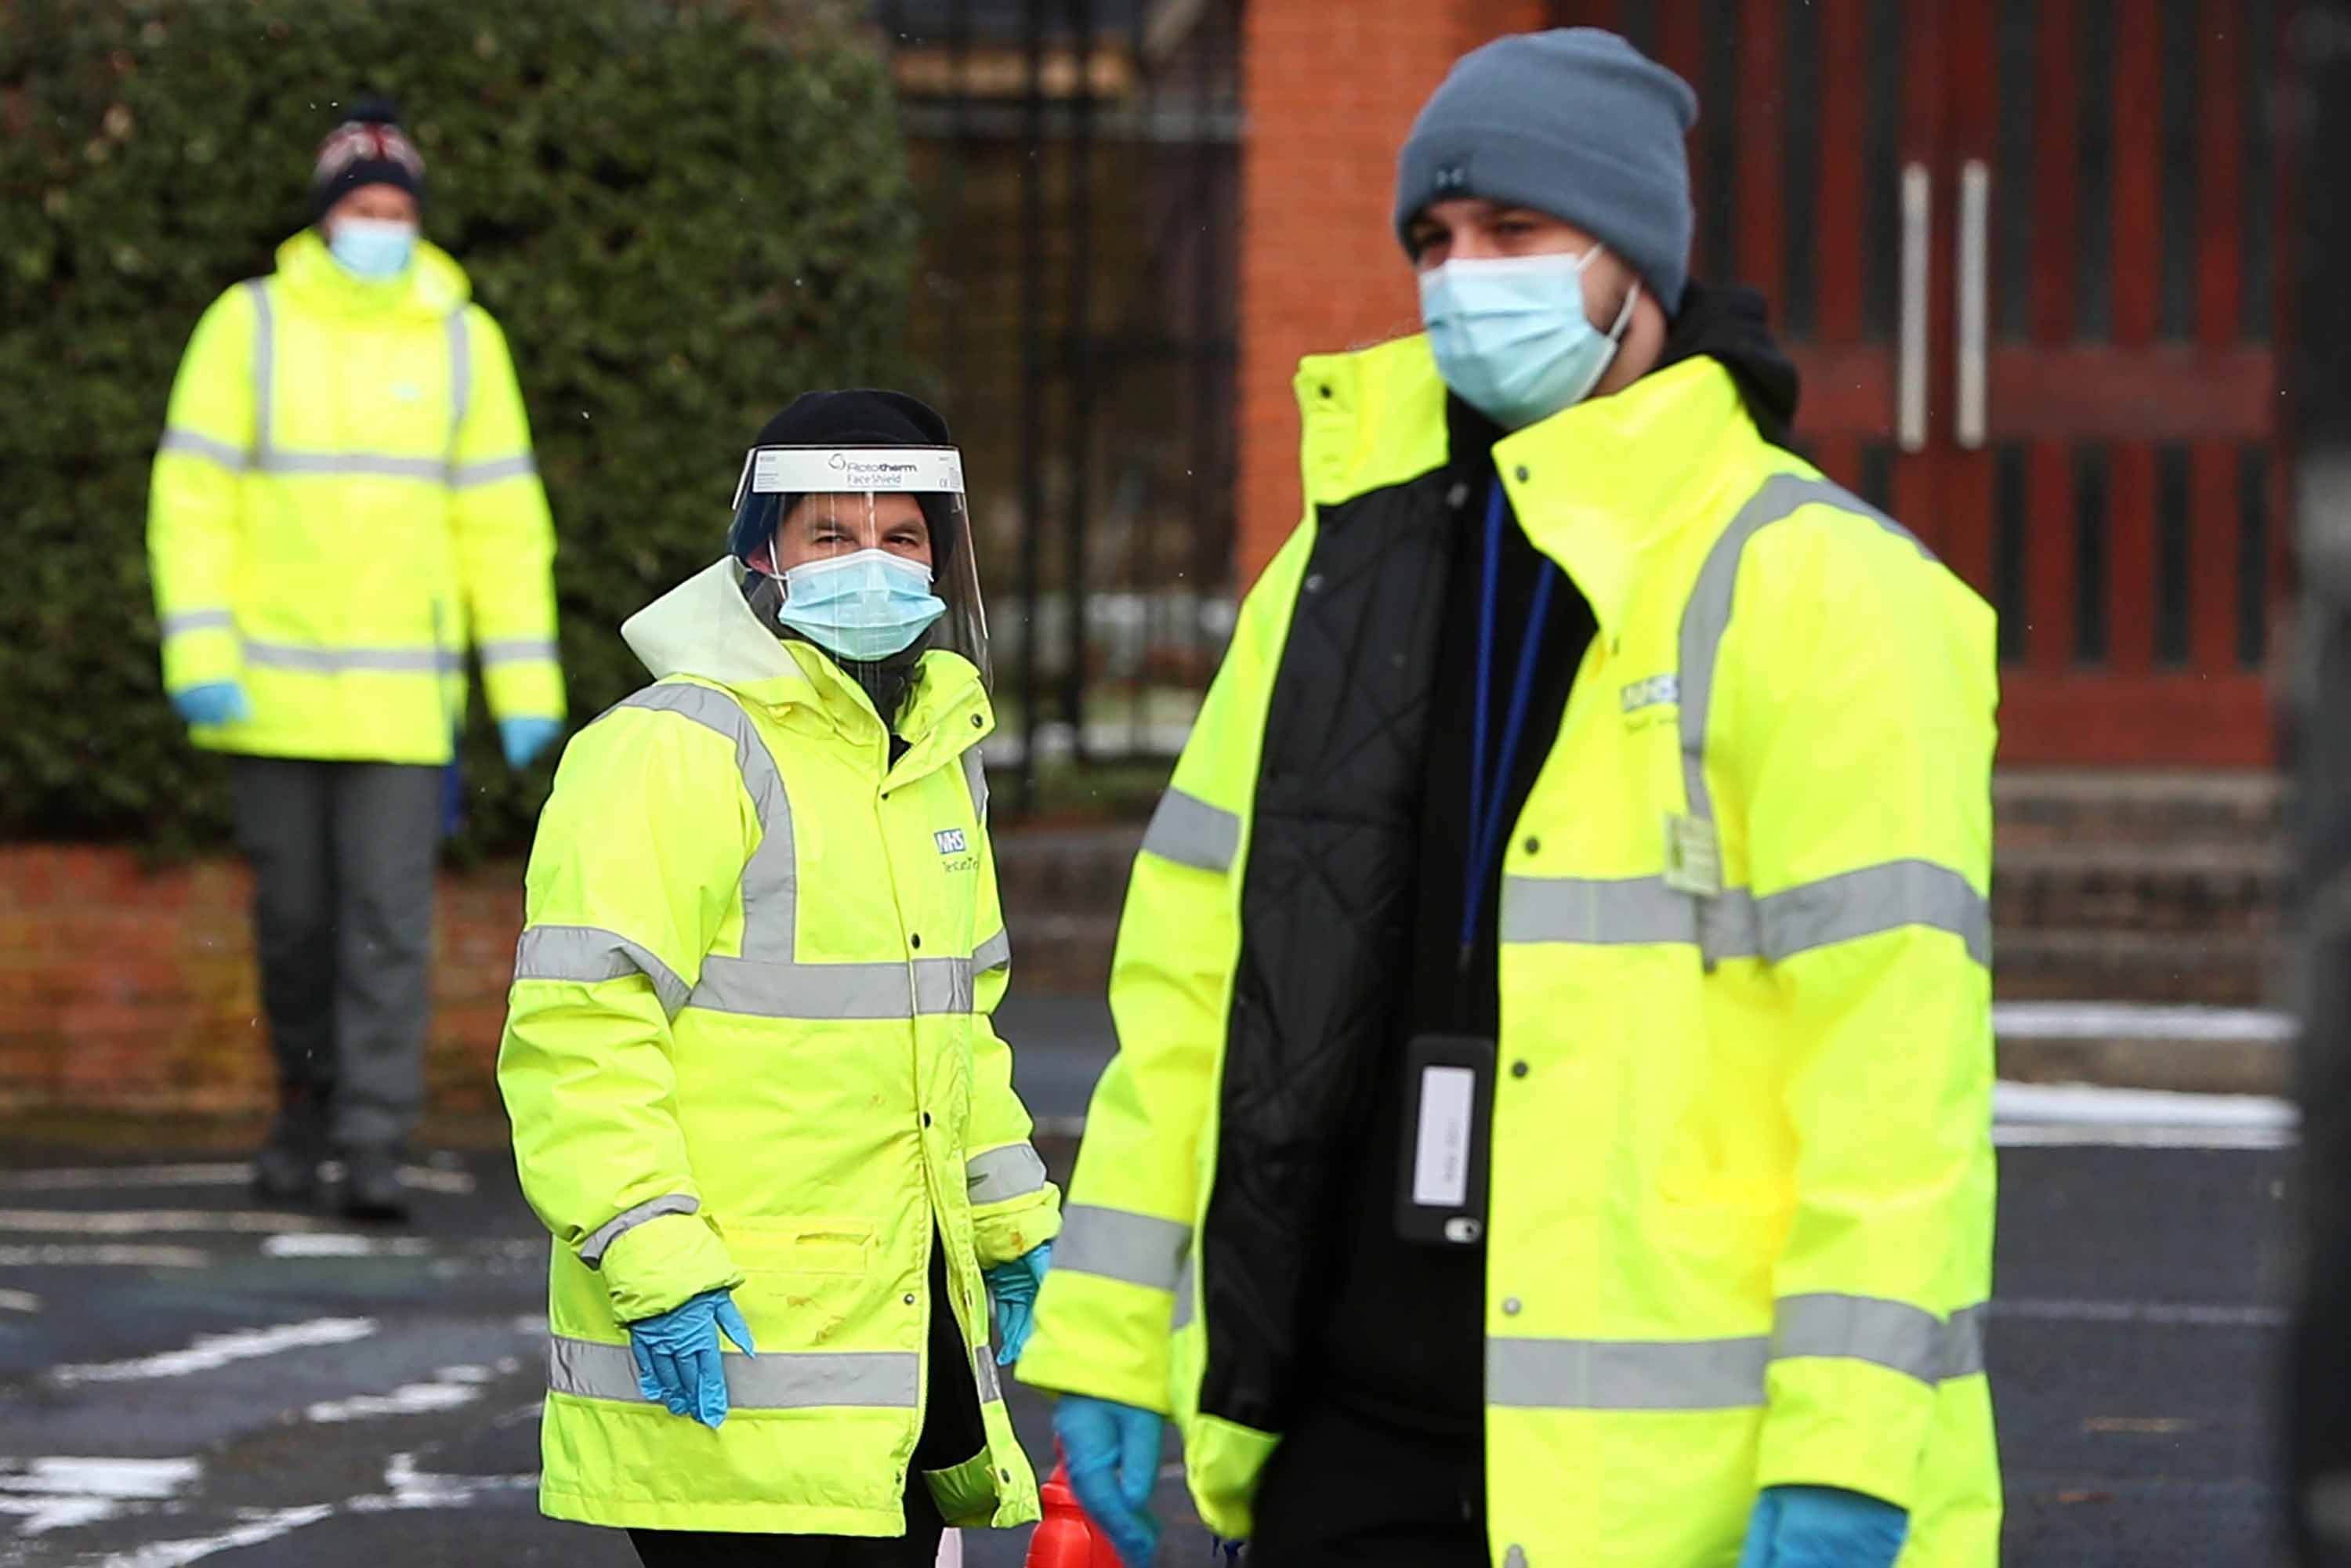 The UK's National Heath Service track and trace staff carry out coronavirus testing at a church in Manchester, England, on February 9, after a mutation of the Kent variant was detected there.